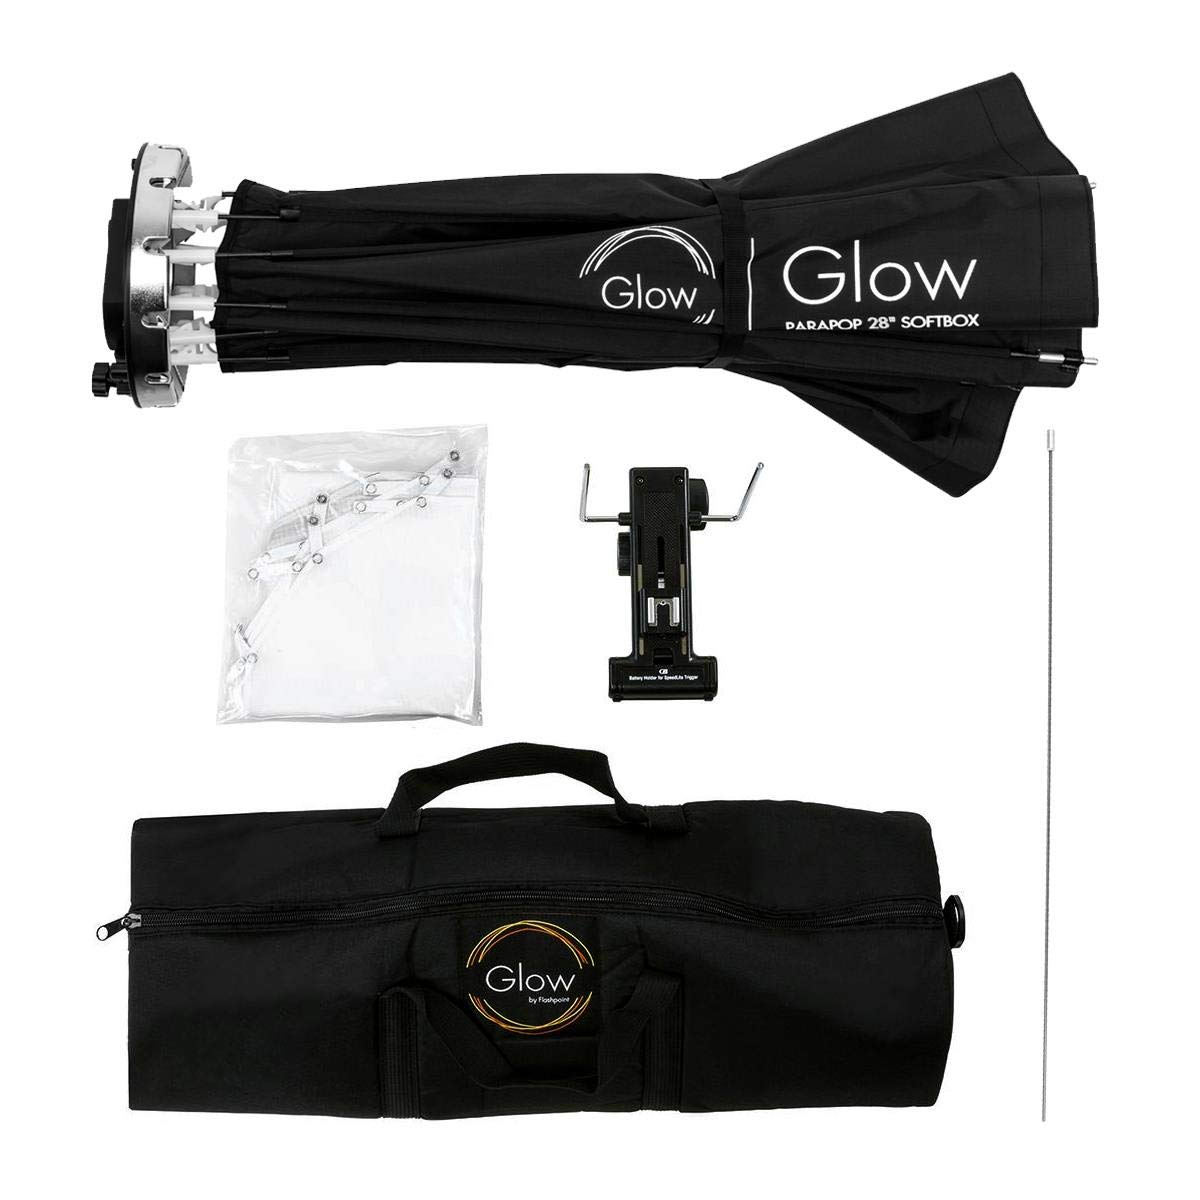 Flashpoint XPLOR 600PRO R2 HSS Battery-Powered Monolight Kit with Glow ParaPop and C-Stand. by Flashpoint (Image #8)